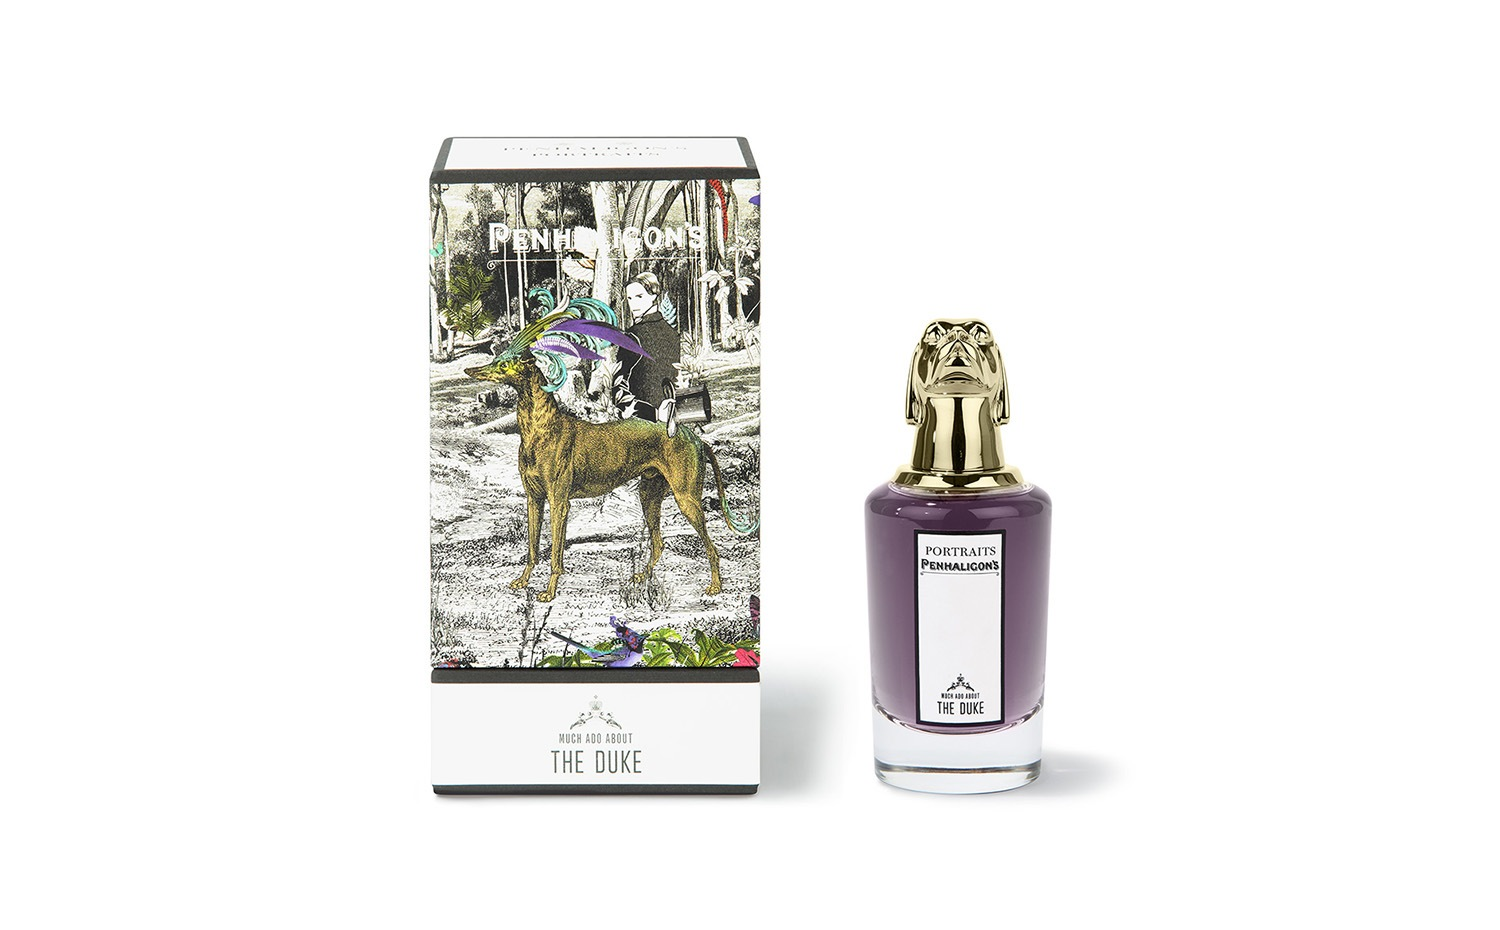 Penhaligon's - Portraits: Much Ado About the Duke